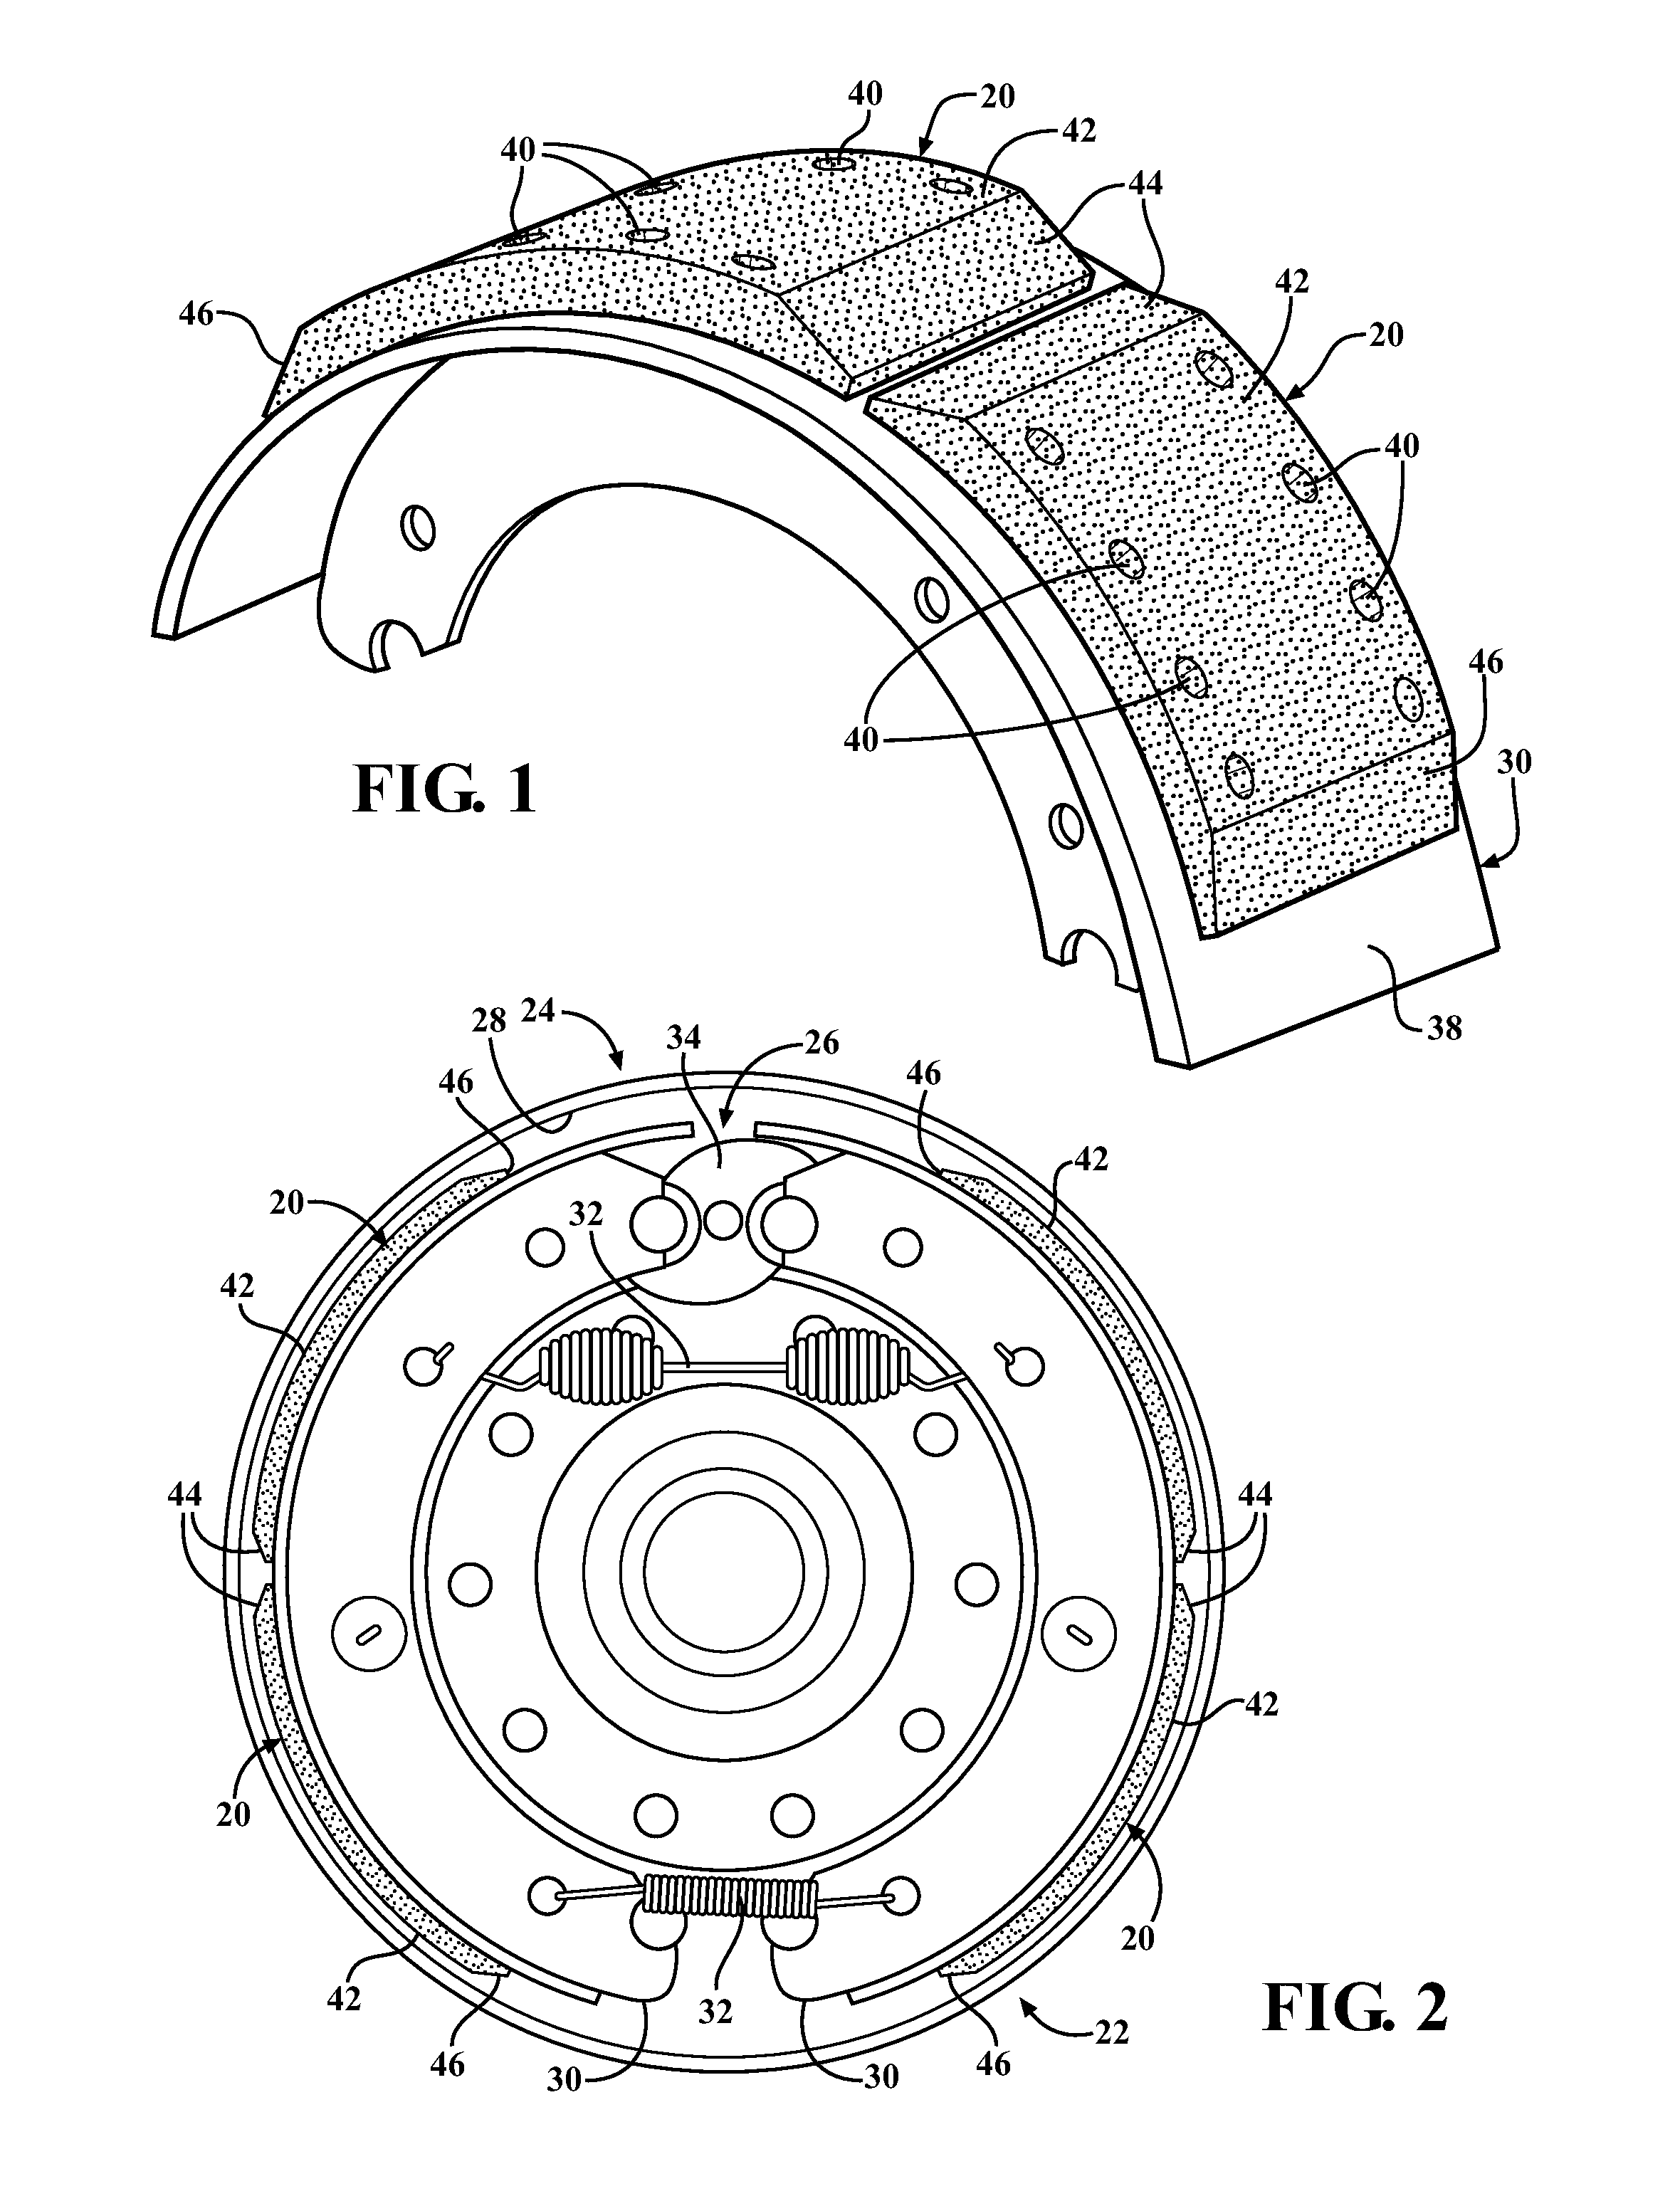 Brake Lining Draw : Patent us brake lining for a drum assembly